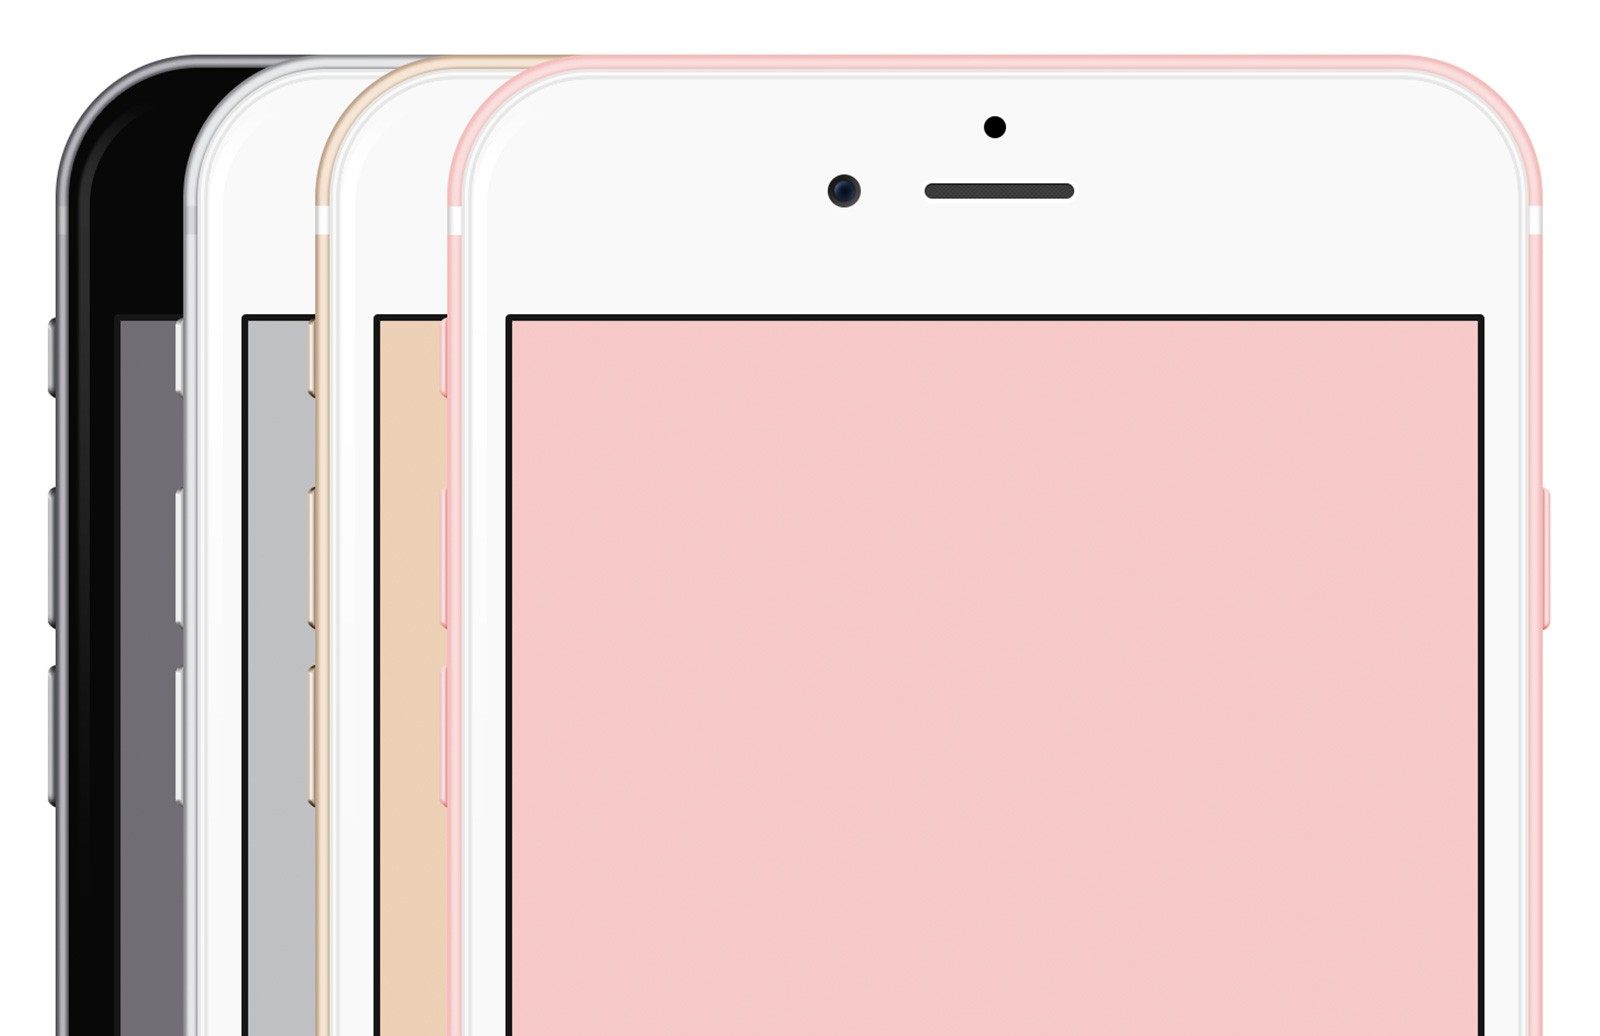 Large I Phone 6 S  Mockup  Preview 3